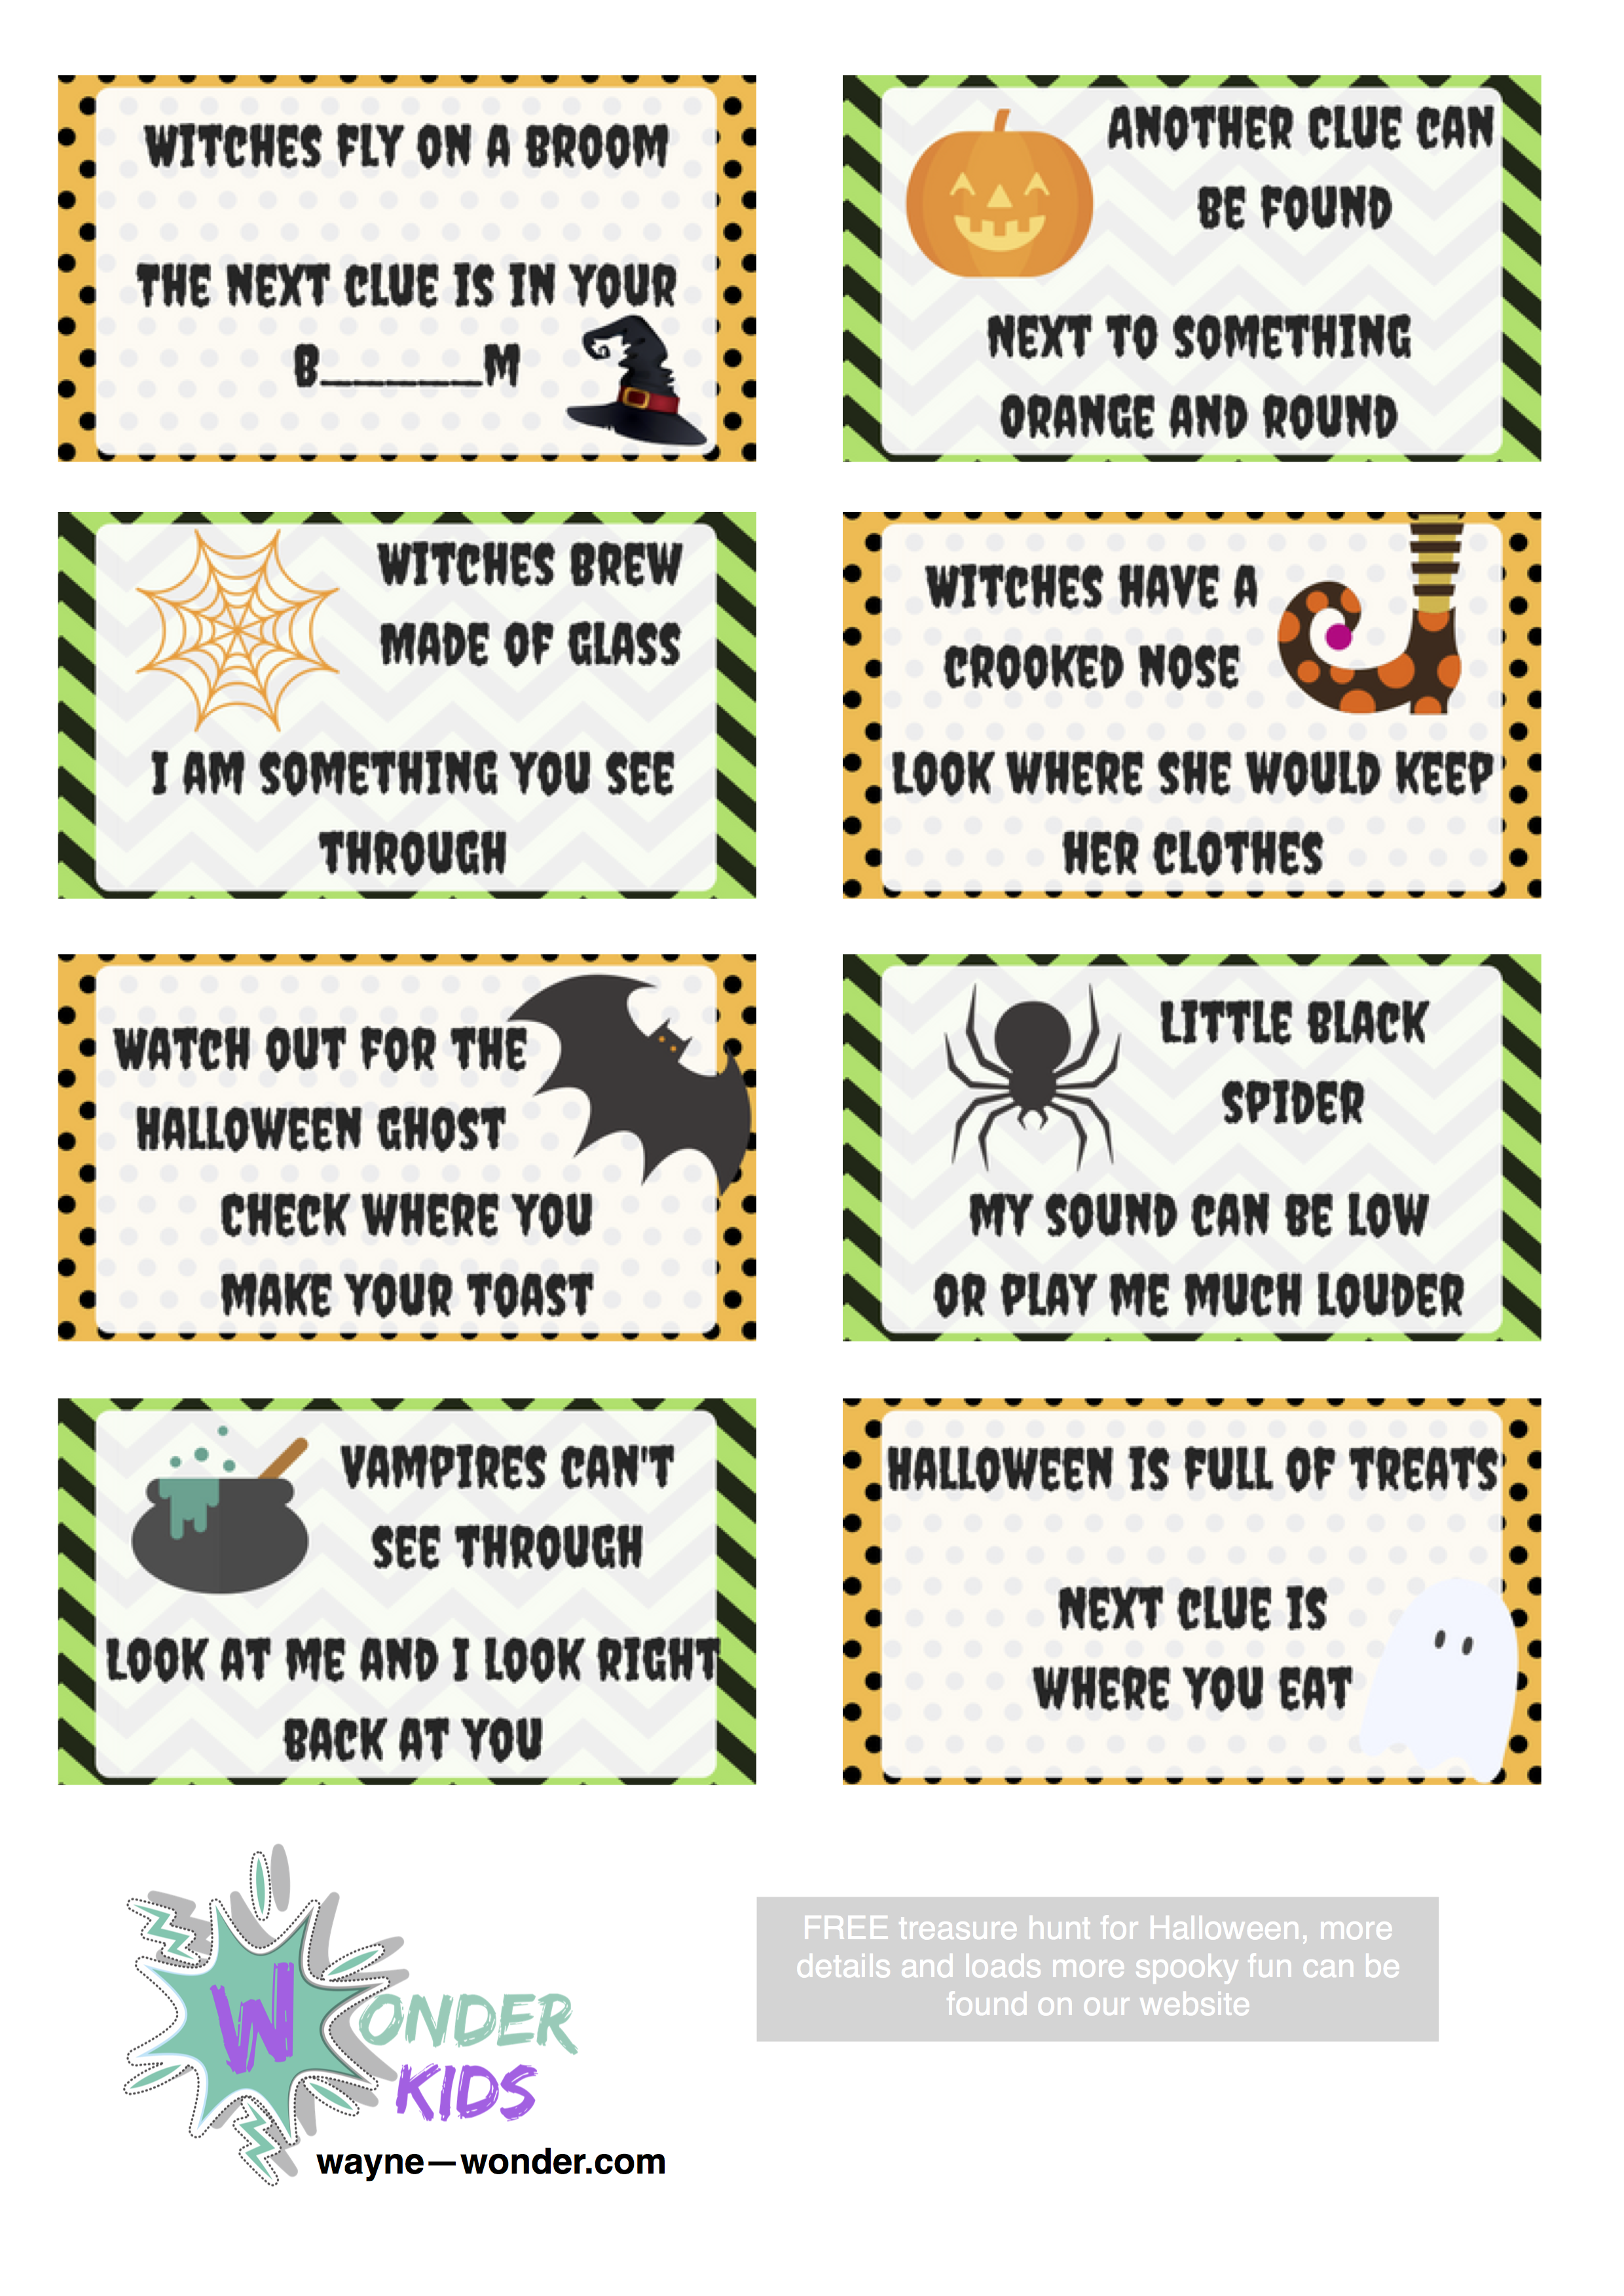 Halloween treasure Hunt from Wonder Kids